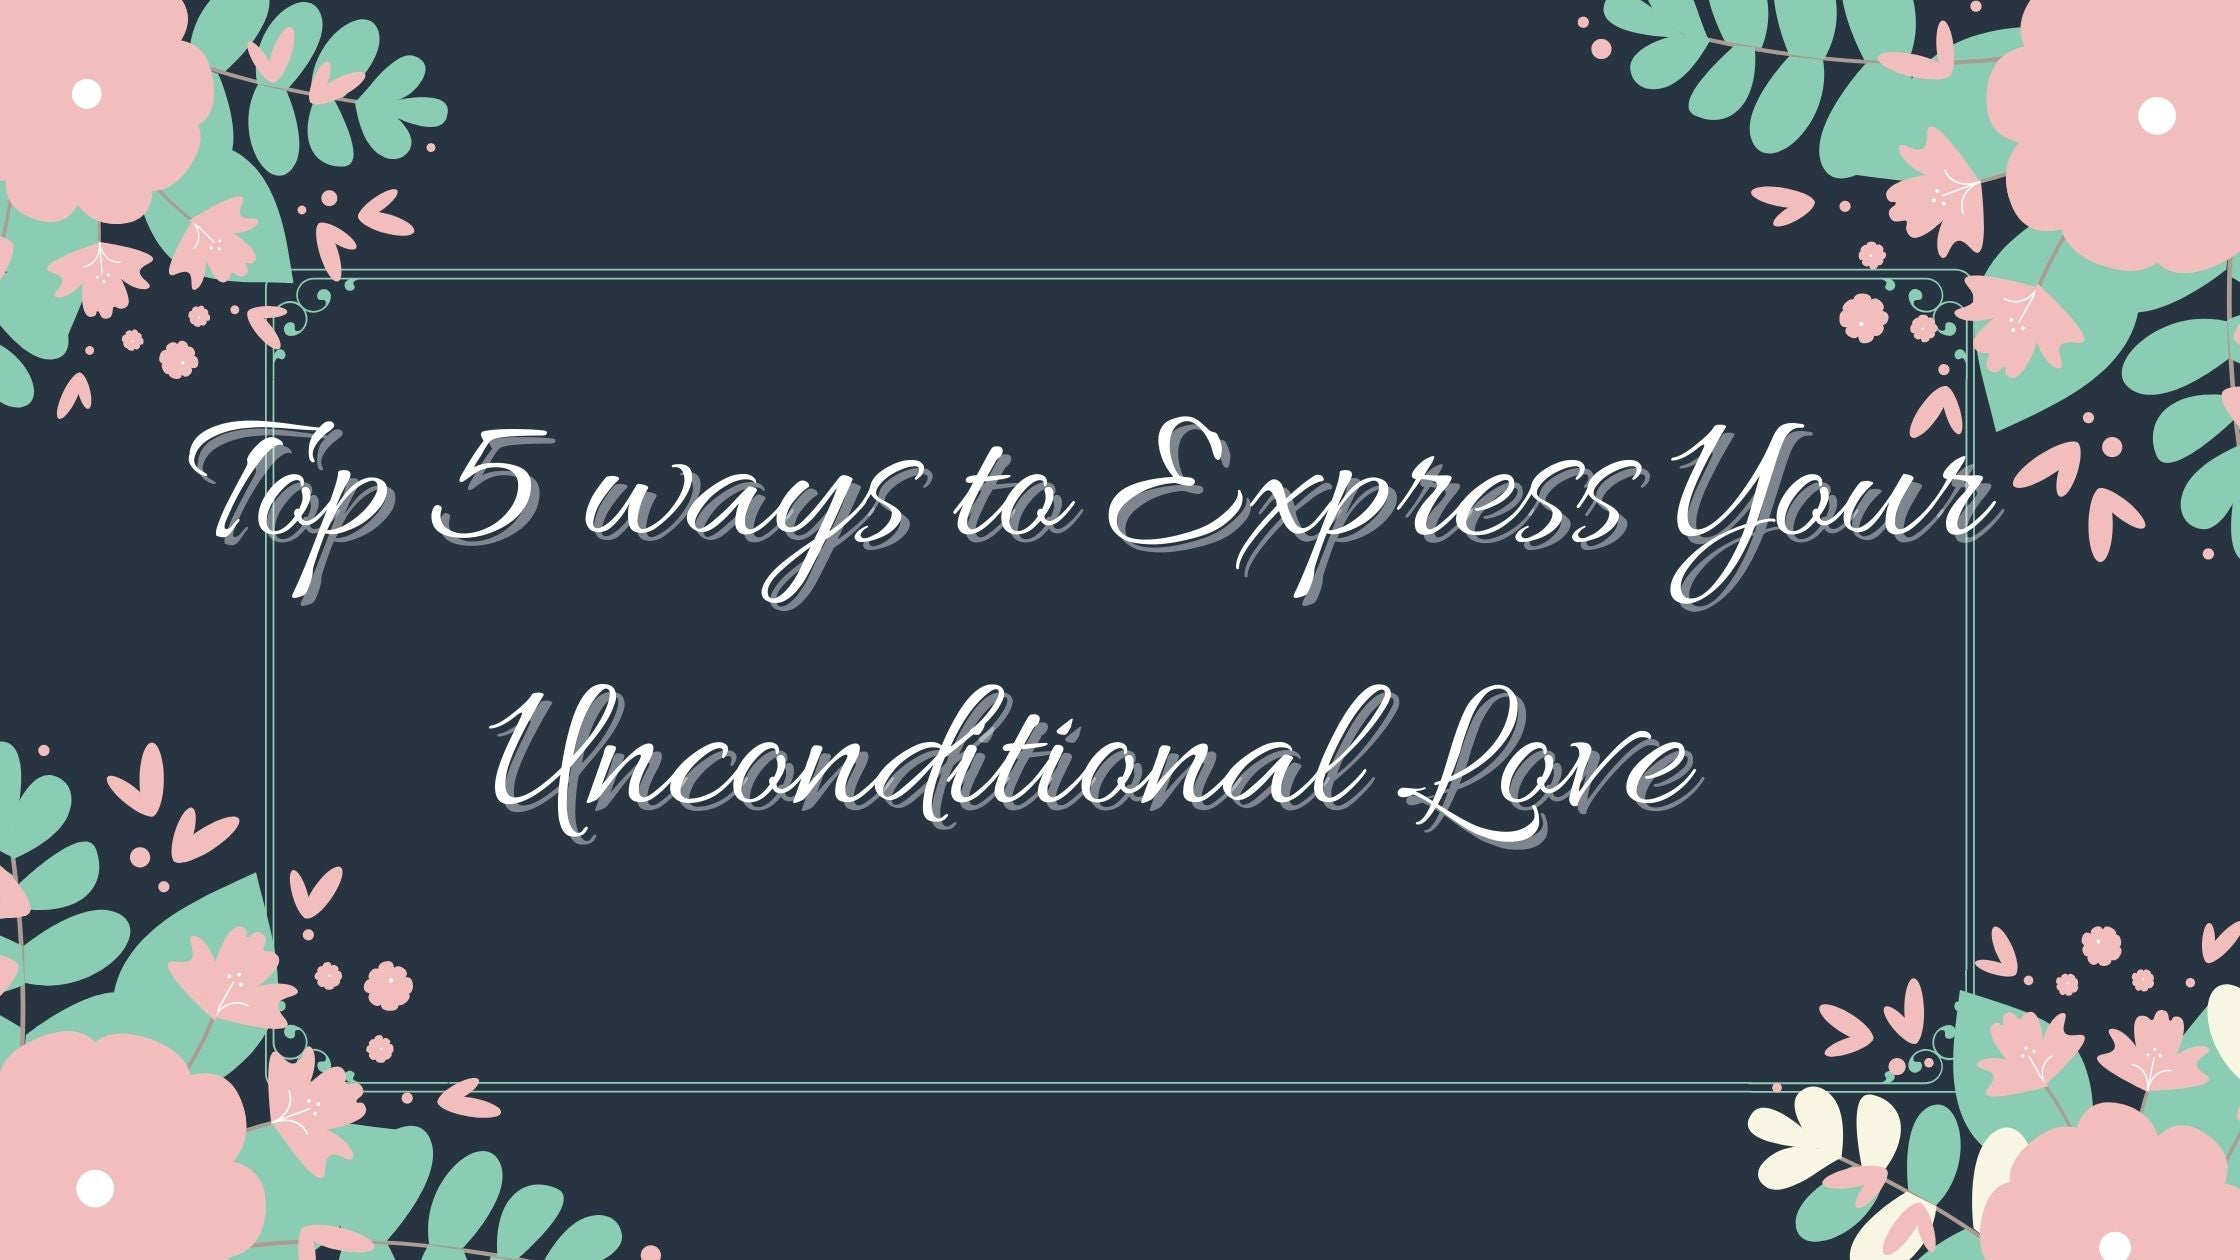 Top 5 ways to Express Your Unconditional Love